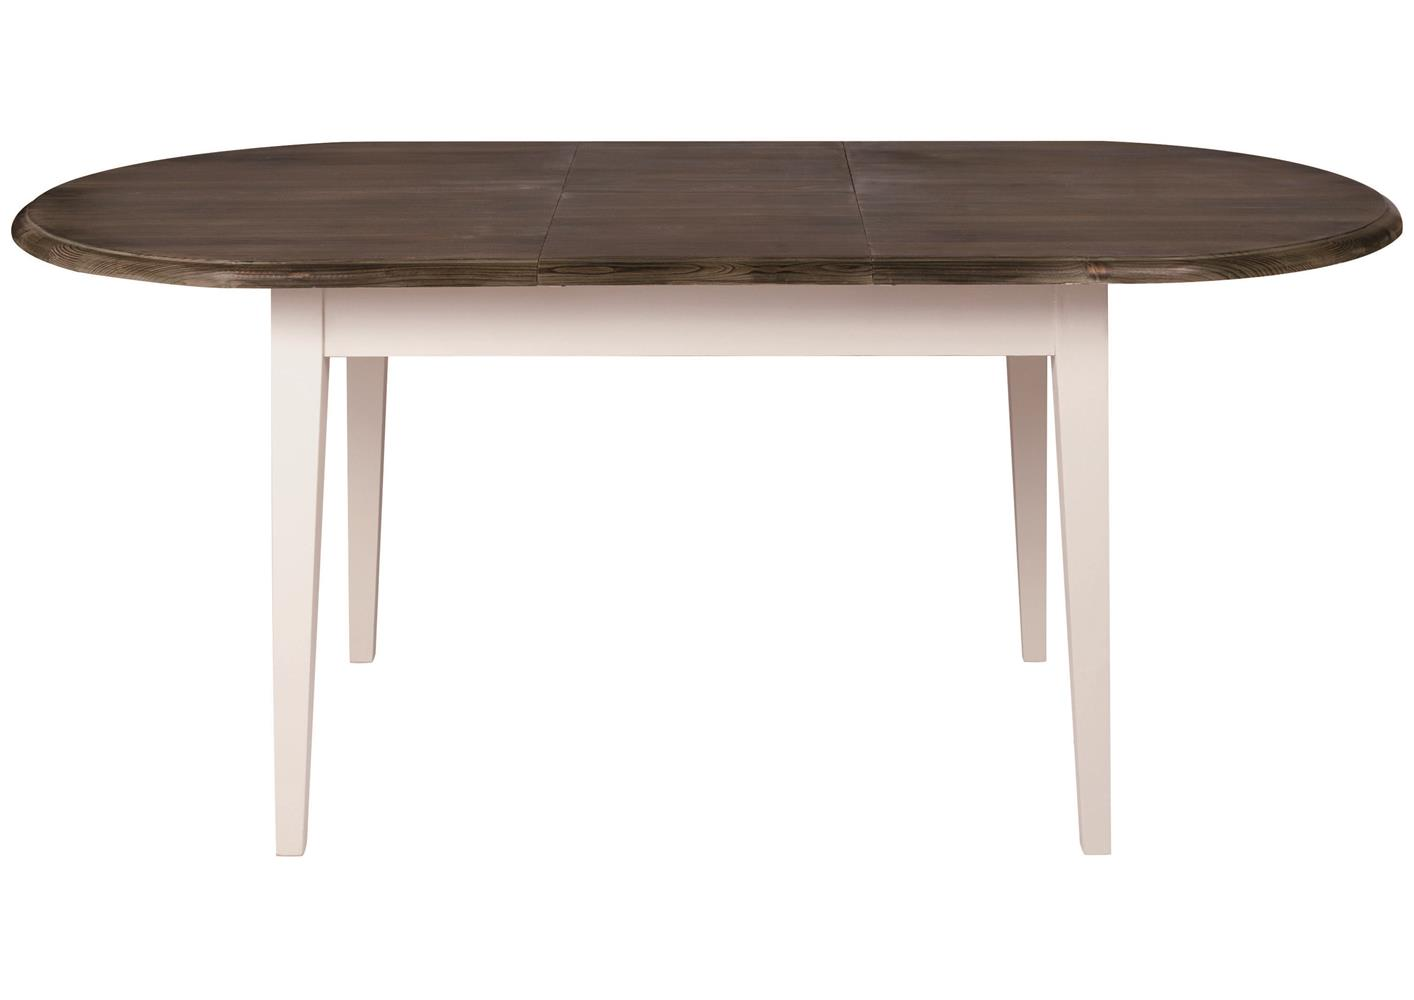 Acheter votre table ovale en pin 1 allonge centrale chez for Table ovale allonge